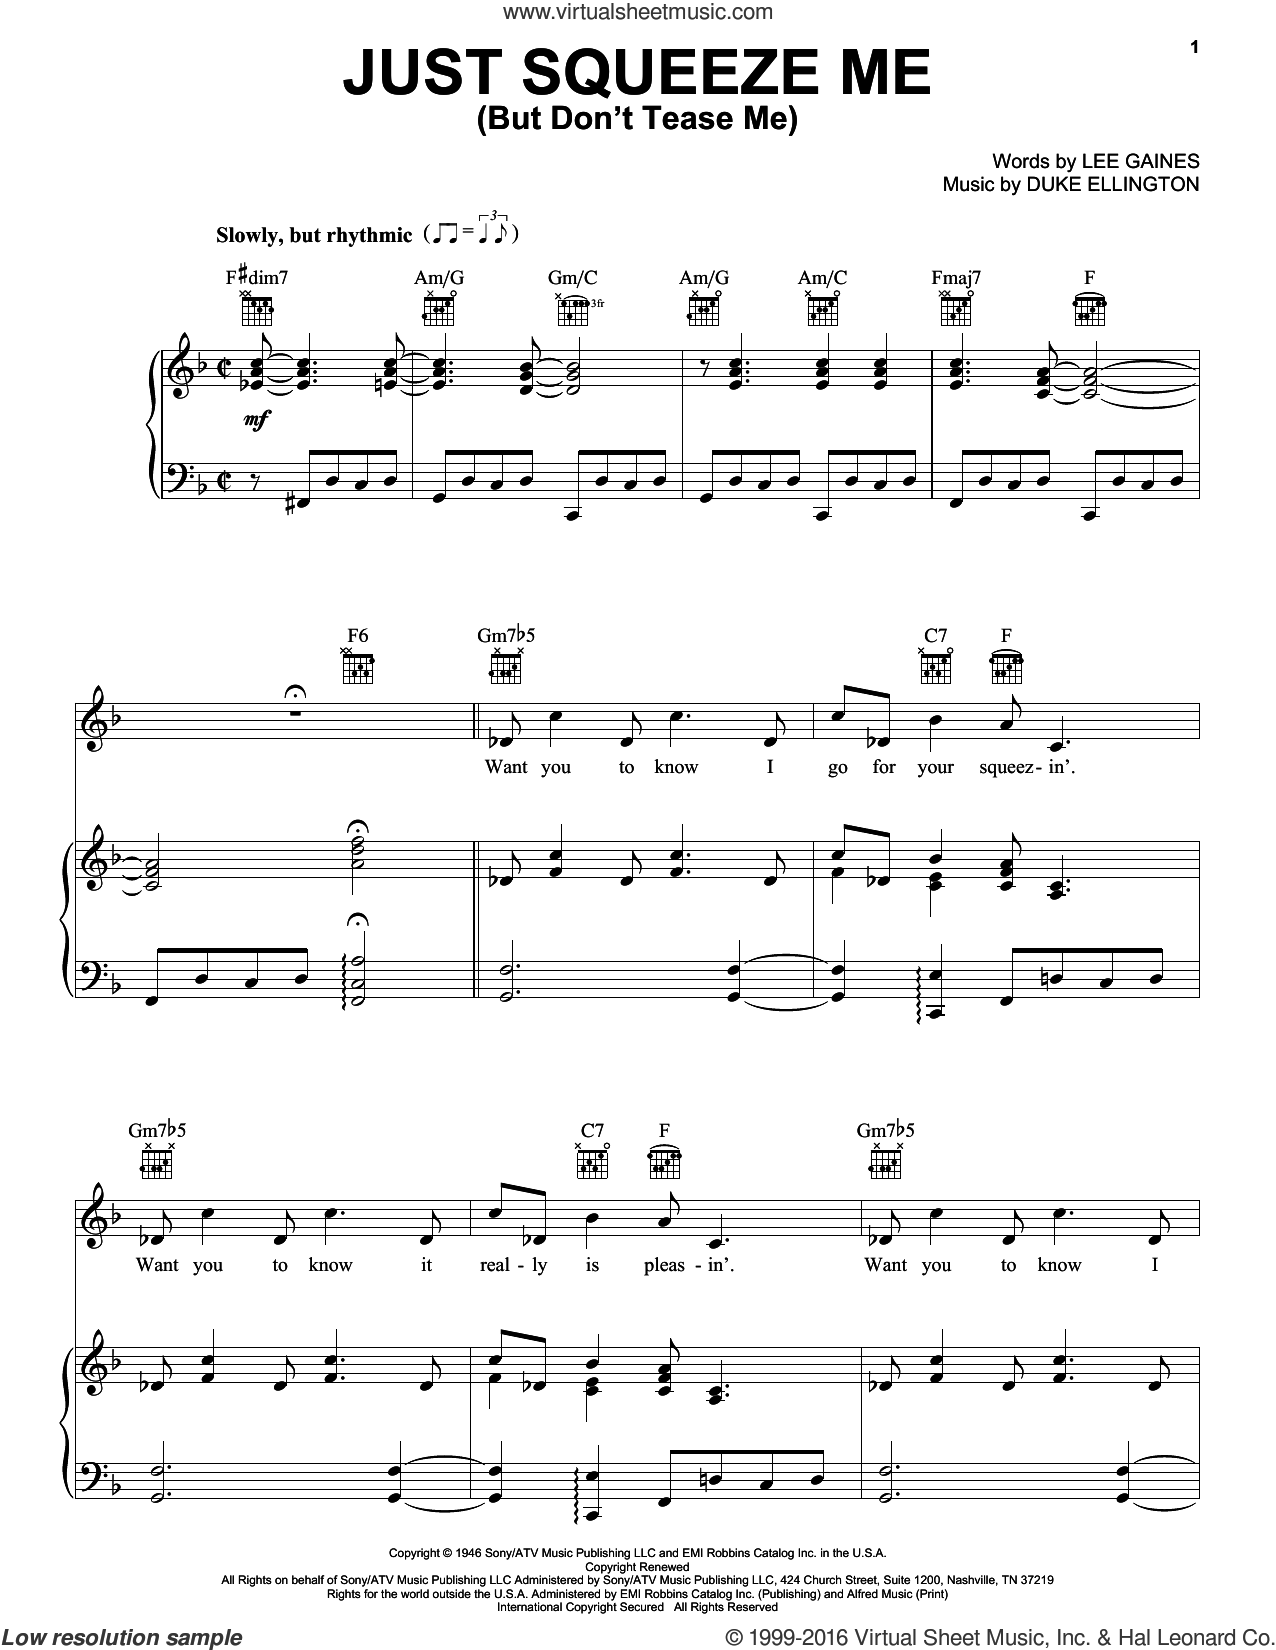 Just Squeeze Me (But Don't Tease Me) sheet music for voice, piano or guitar by Duke Ellington, Lena Horne and Lee Gaines, intermediate skill level